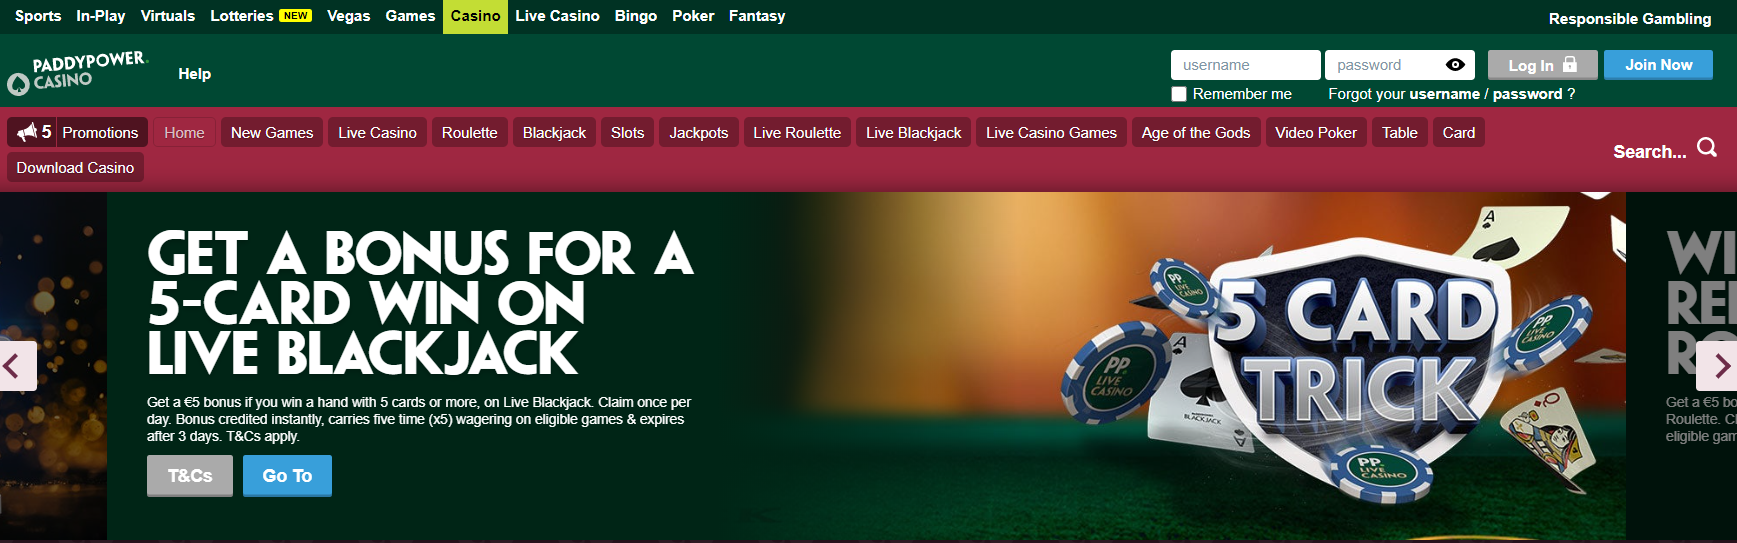 paddy-power-casino_main